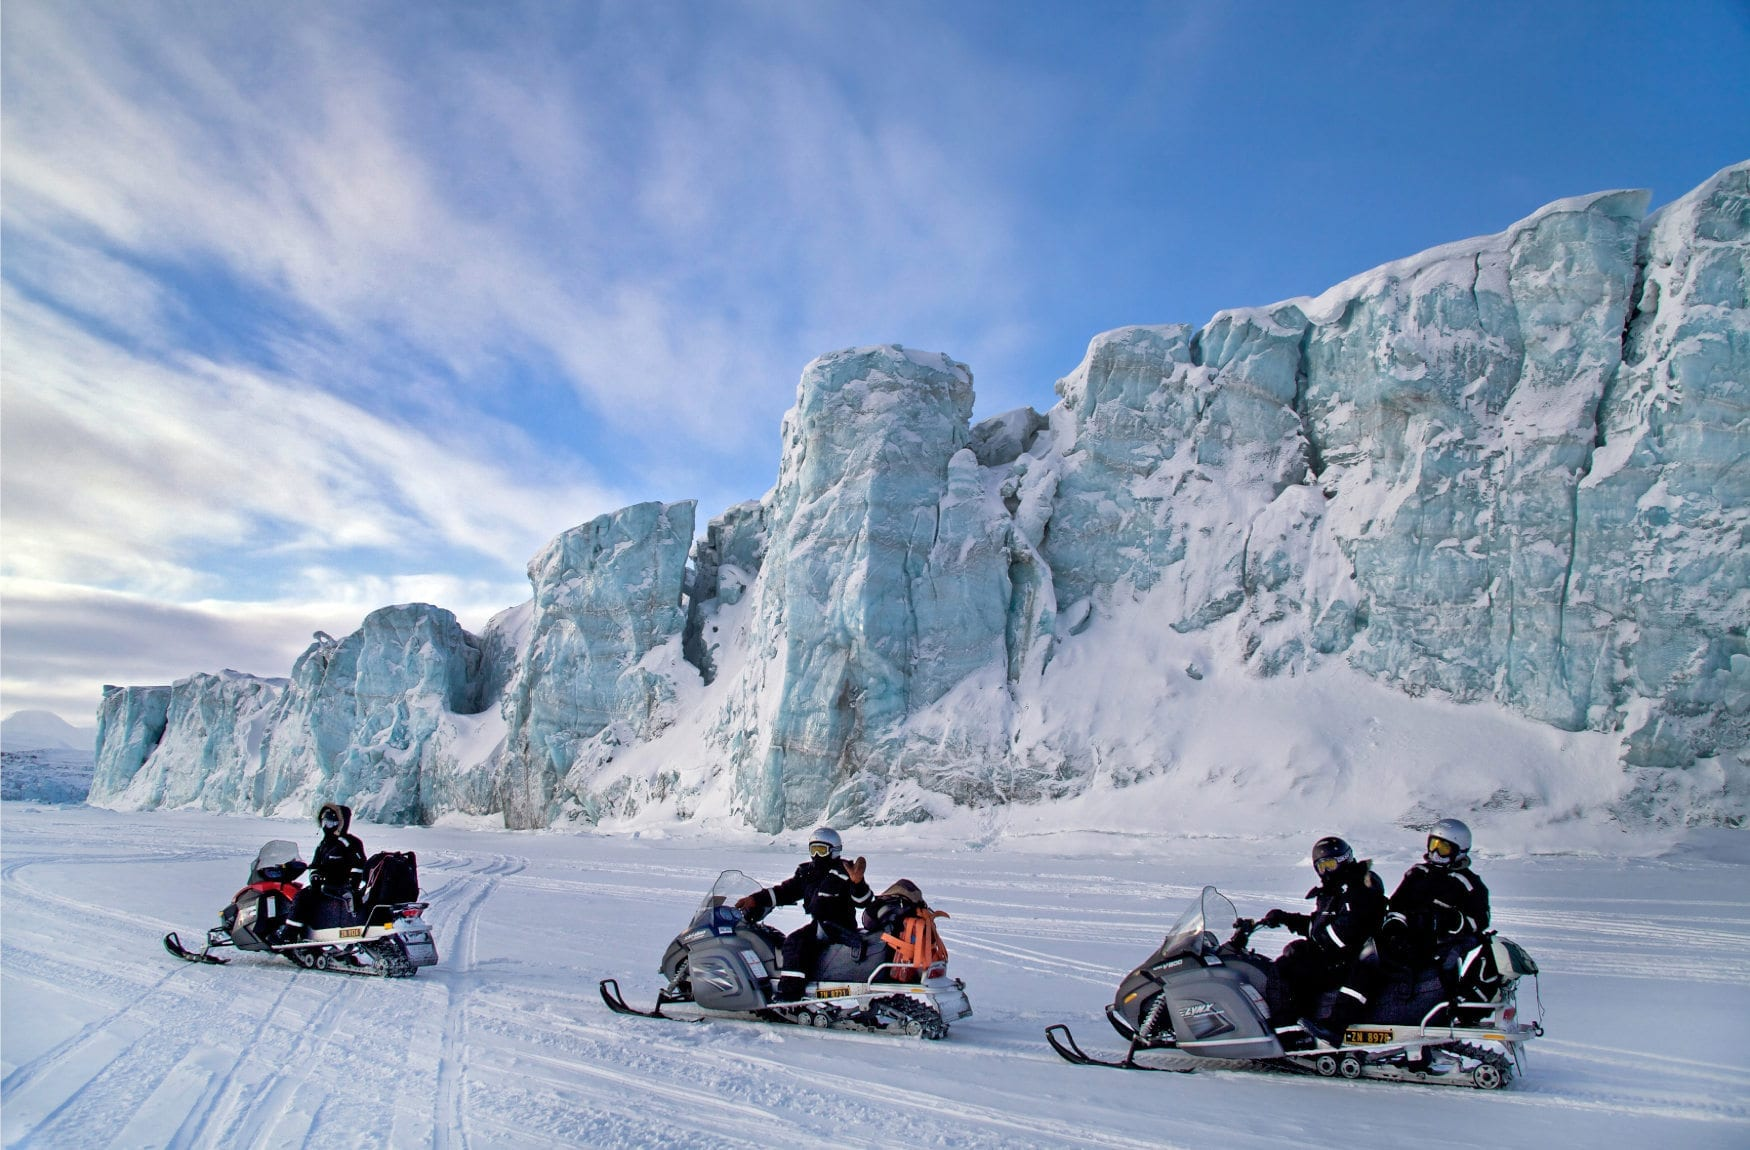 Snowmobile drivers in Svalbard in Norway